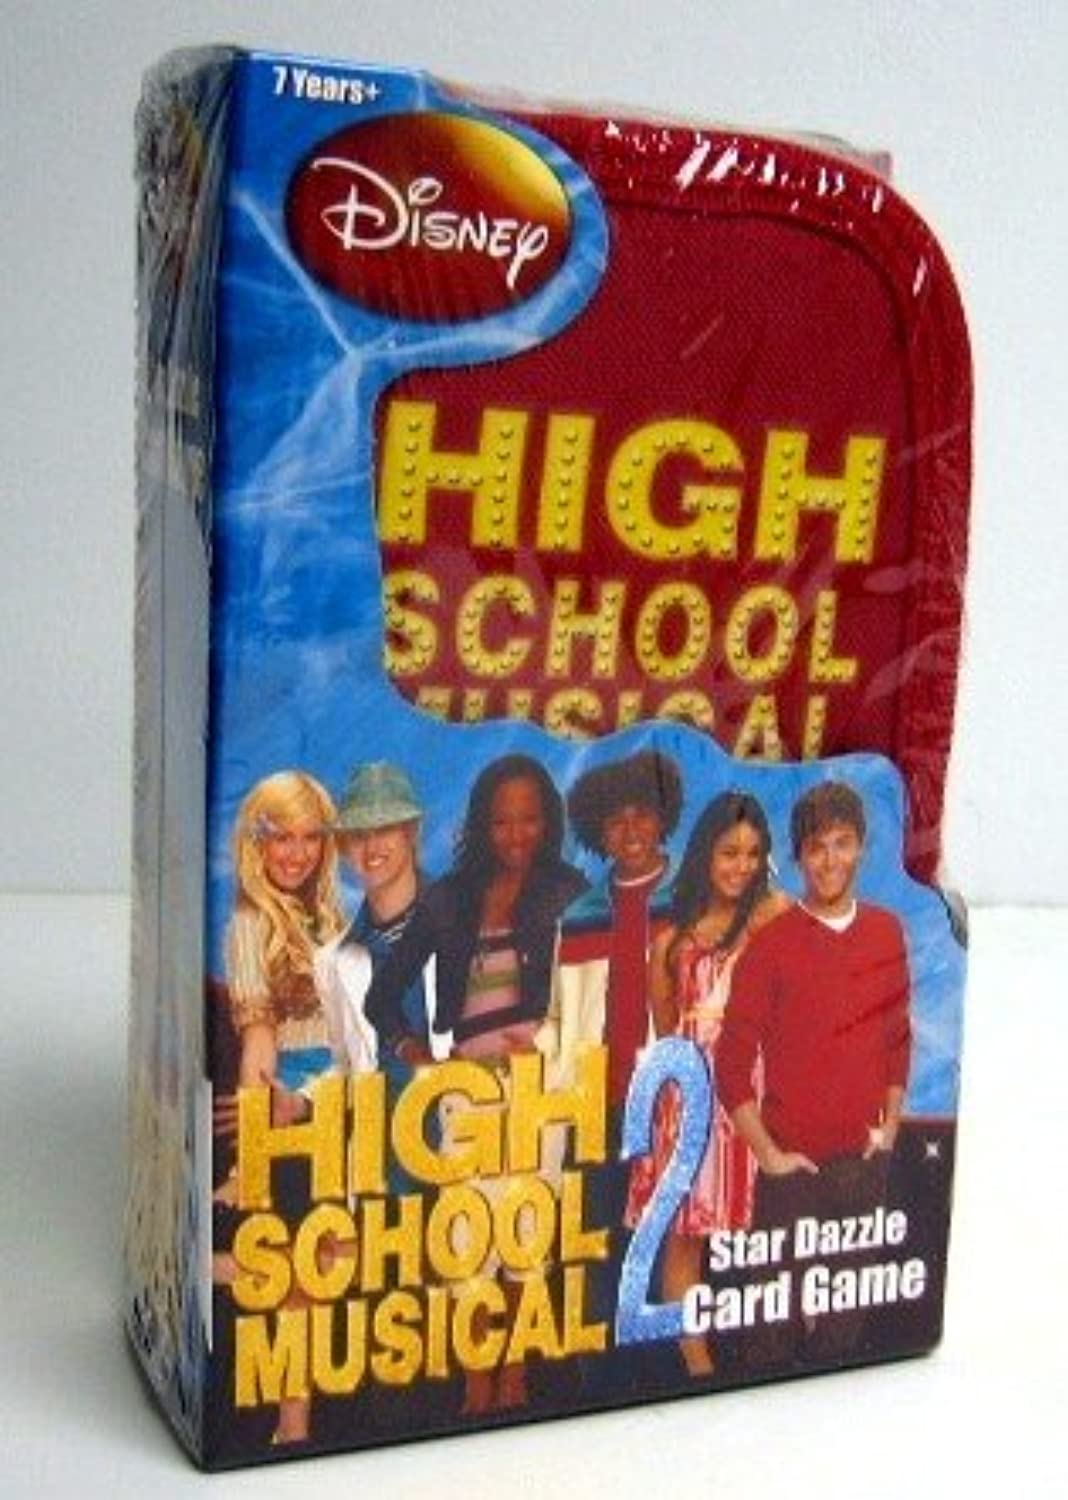 High School Musical 2STAR DAZZLE Card GameDisney Exclusive